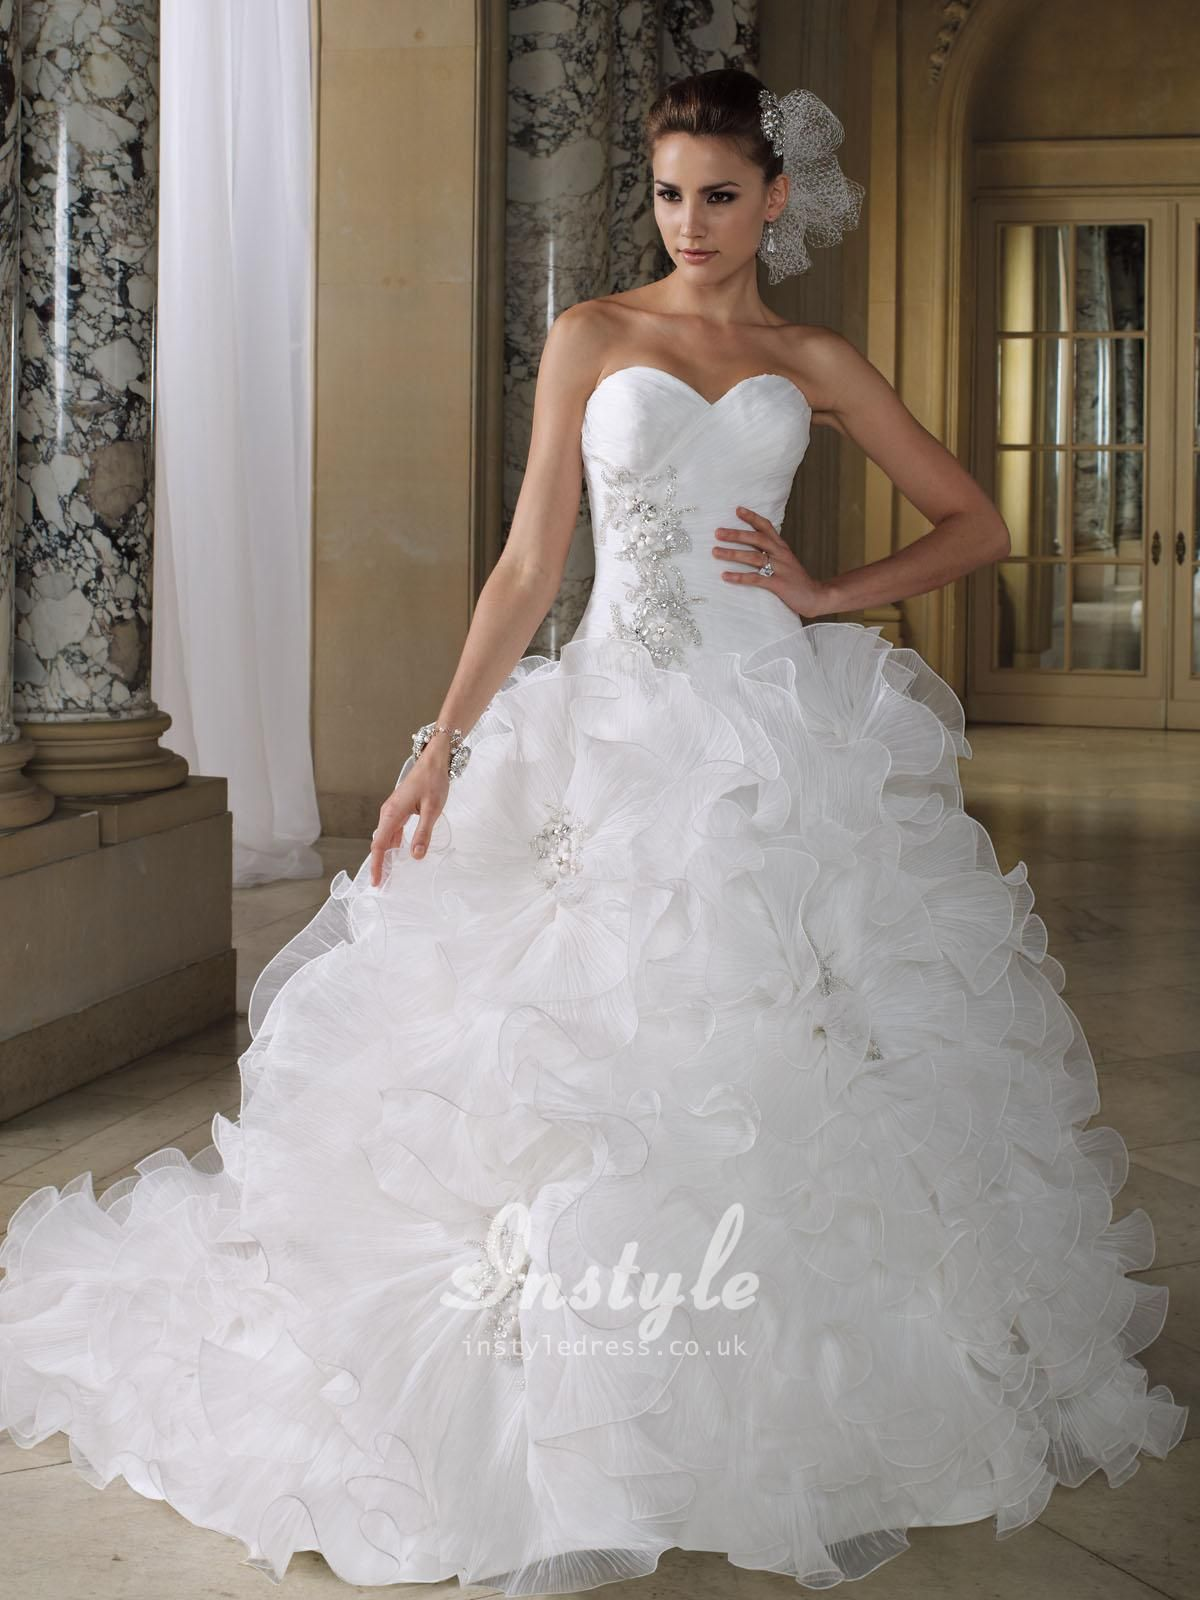 big poofy wedding dresses wedding dresses with bling sweetheart neckline with color on the back Crystal Pleated Organza Ruffled